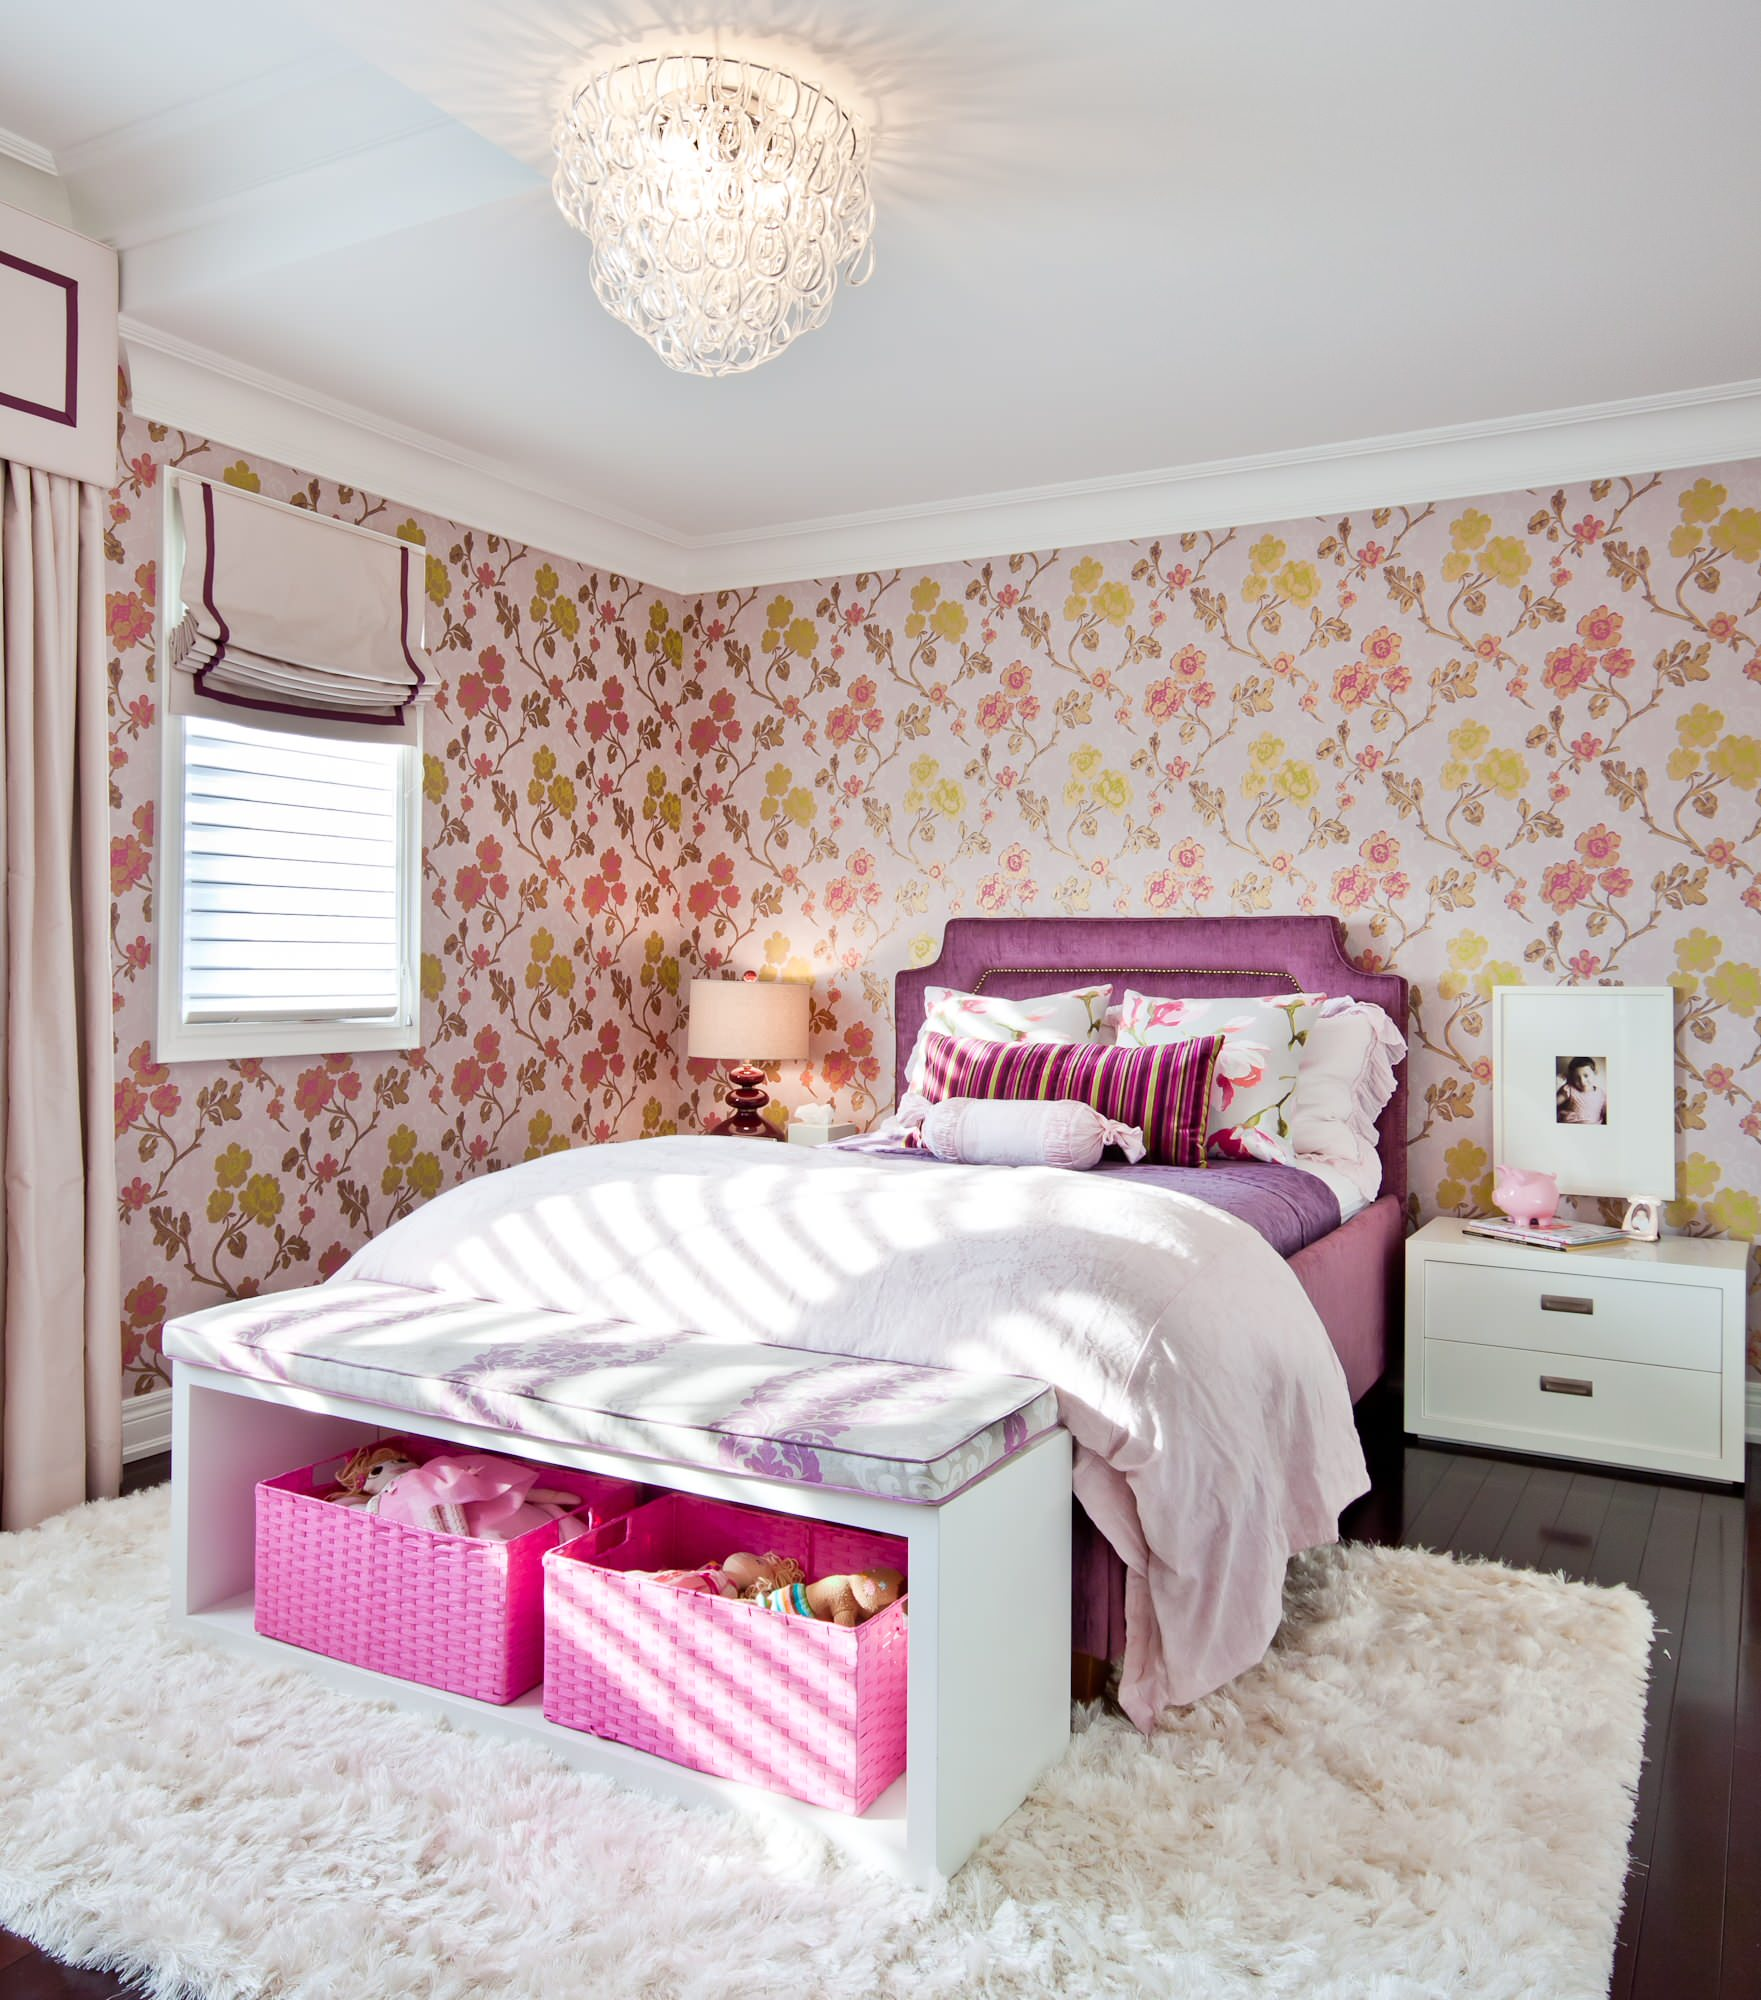 Interesting Room With Interior Decor Plus Storage Boxes Ideas: Bedroom  Bench And Floral Wallpaper In